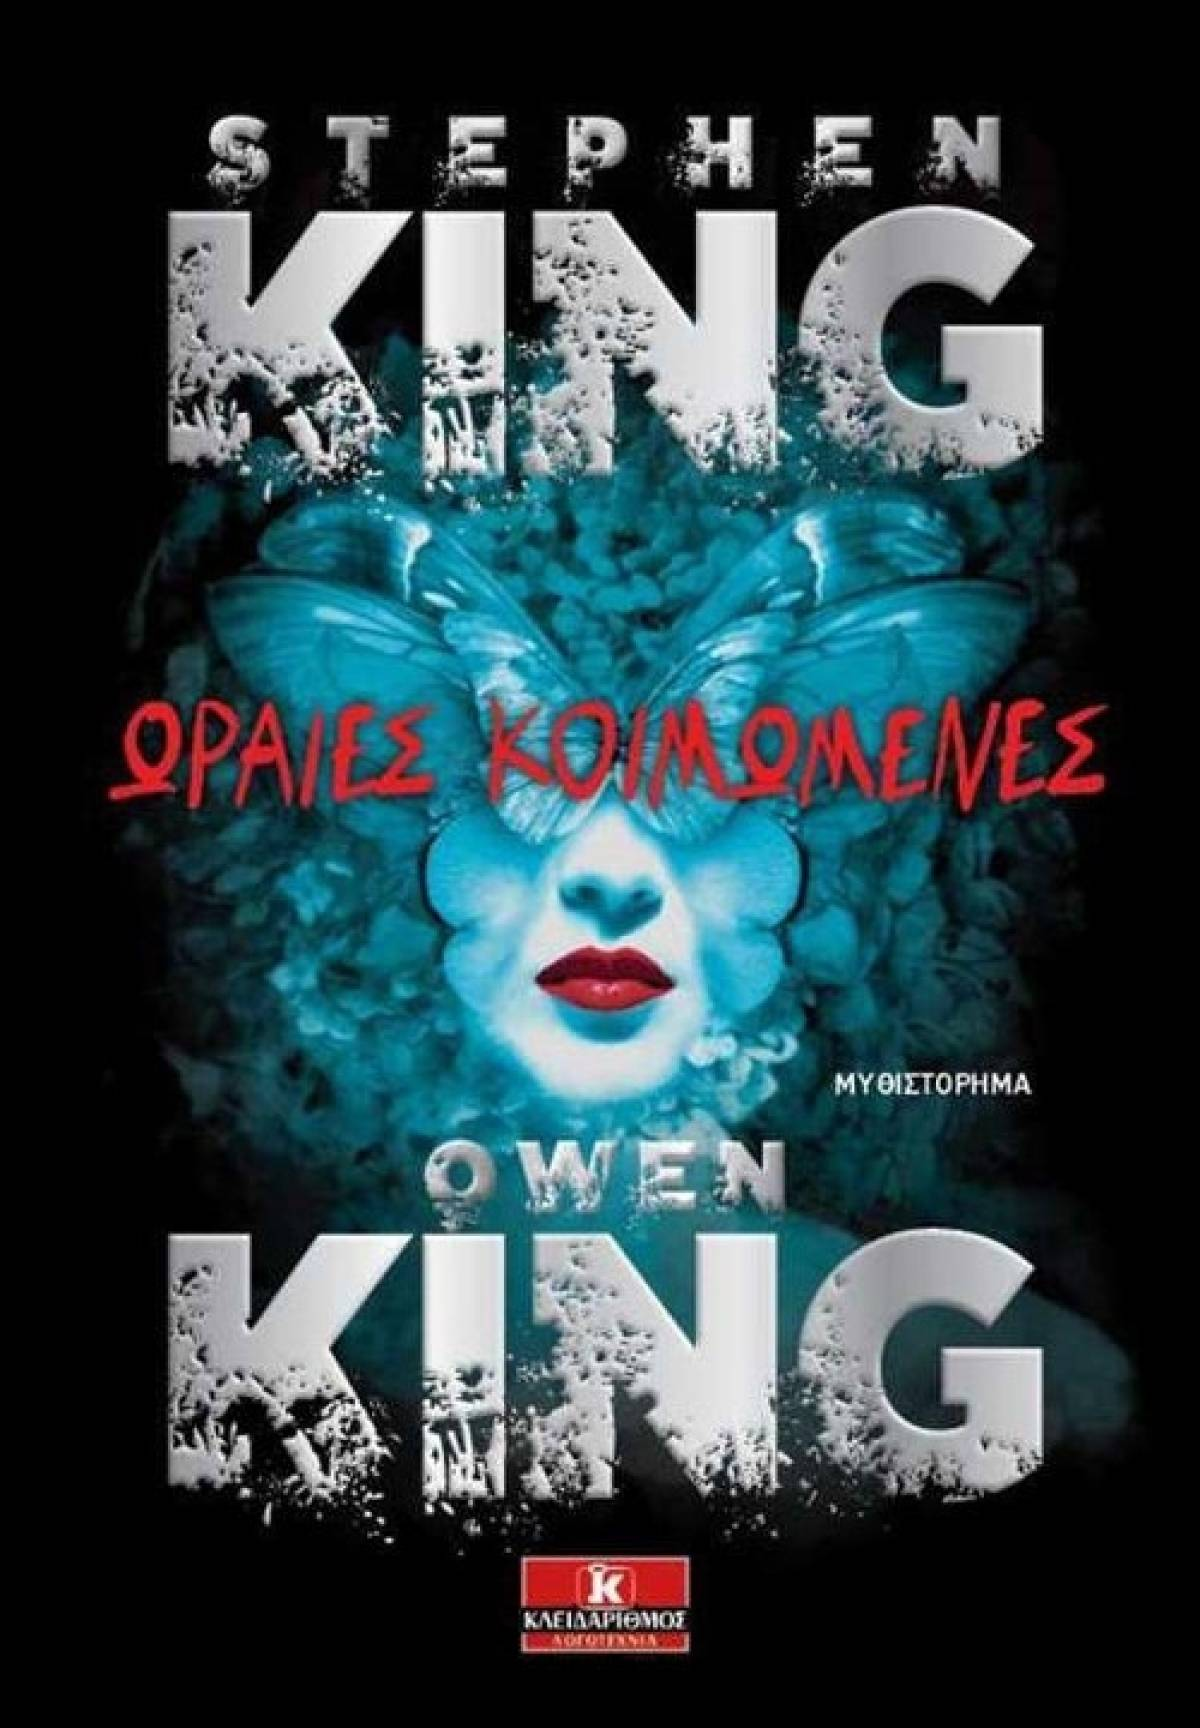 STEPHEN KING - OWEN KING